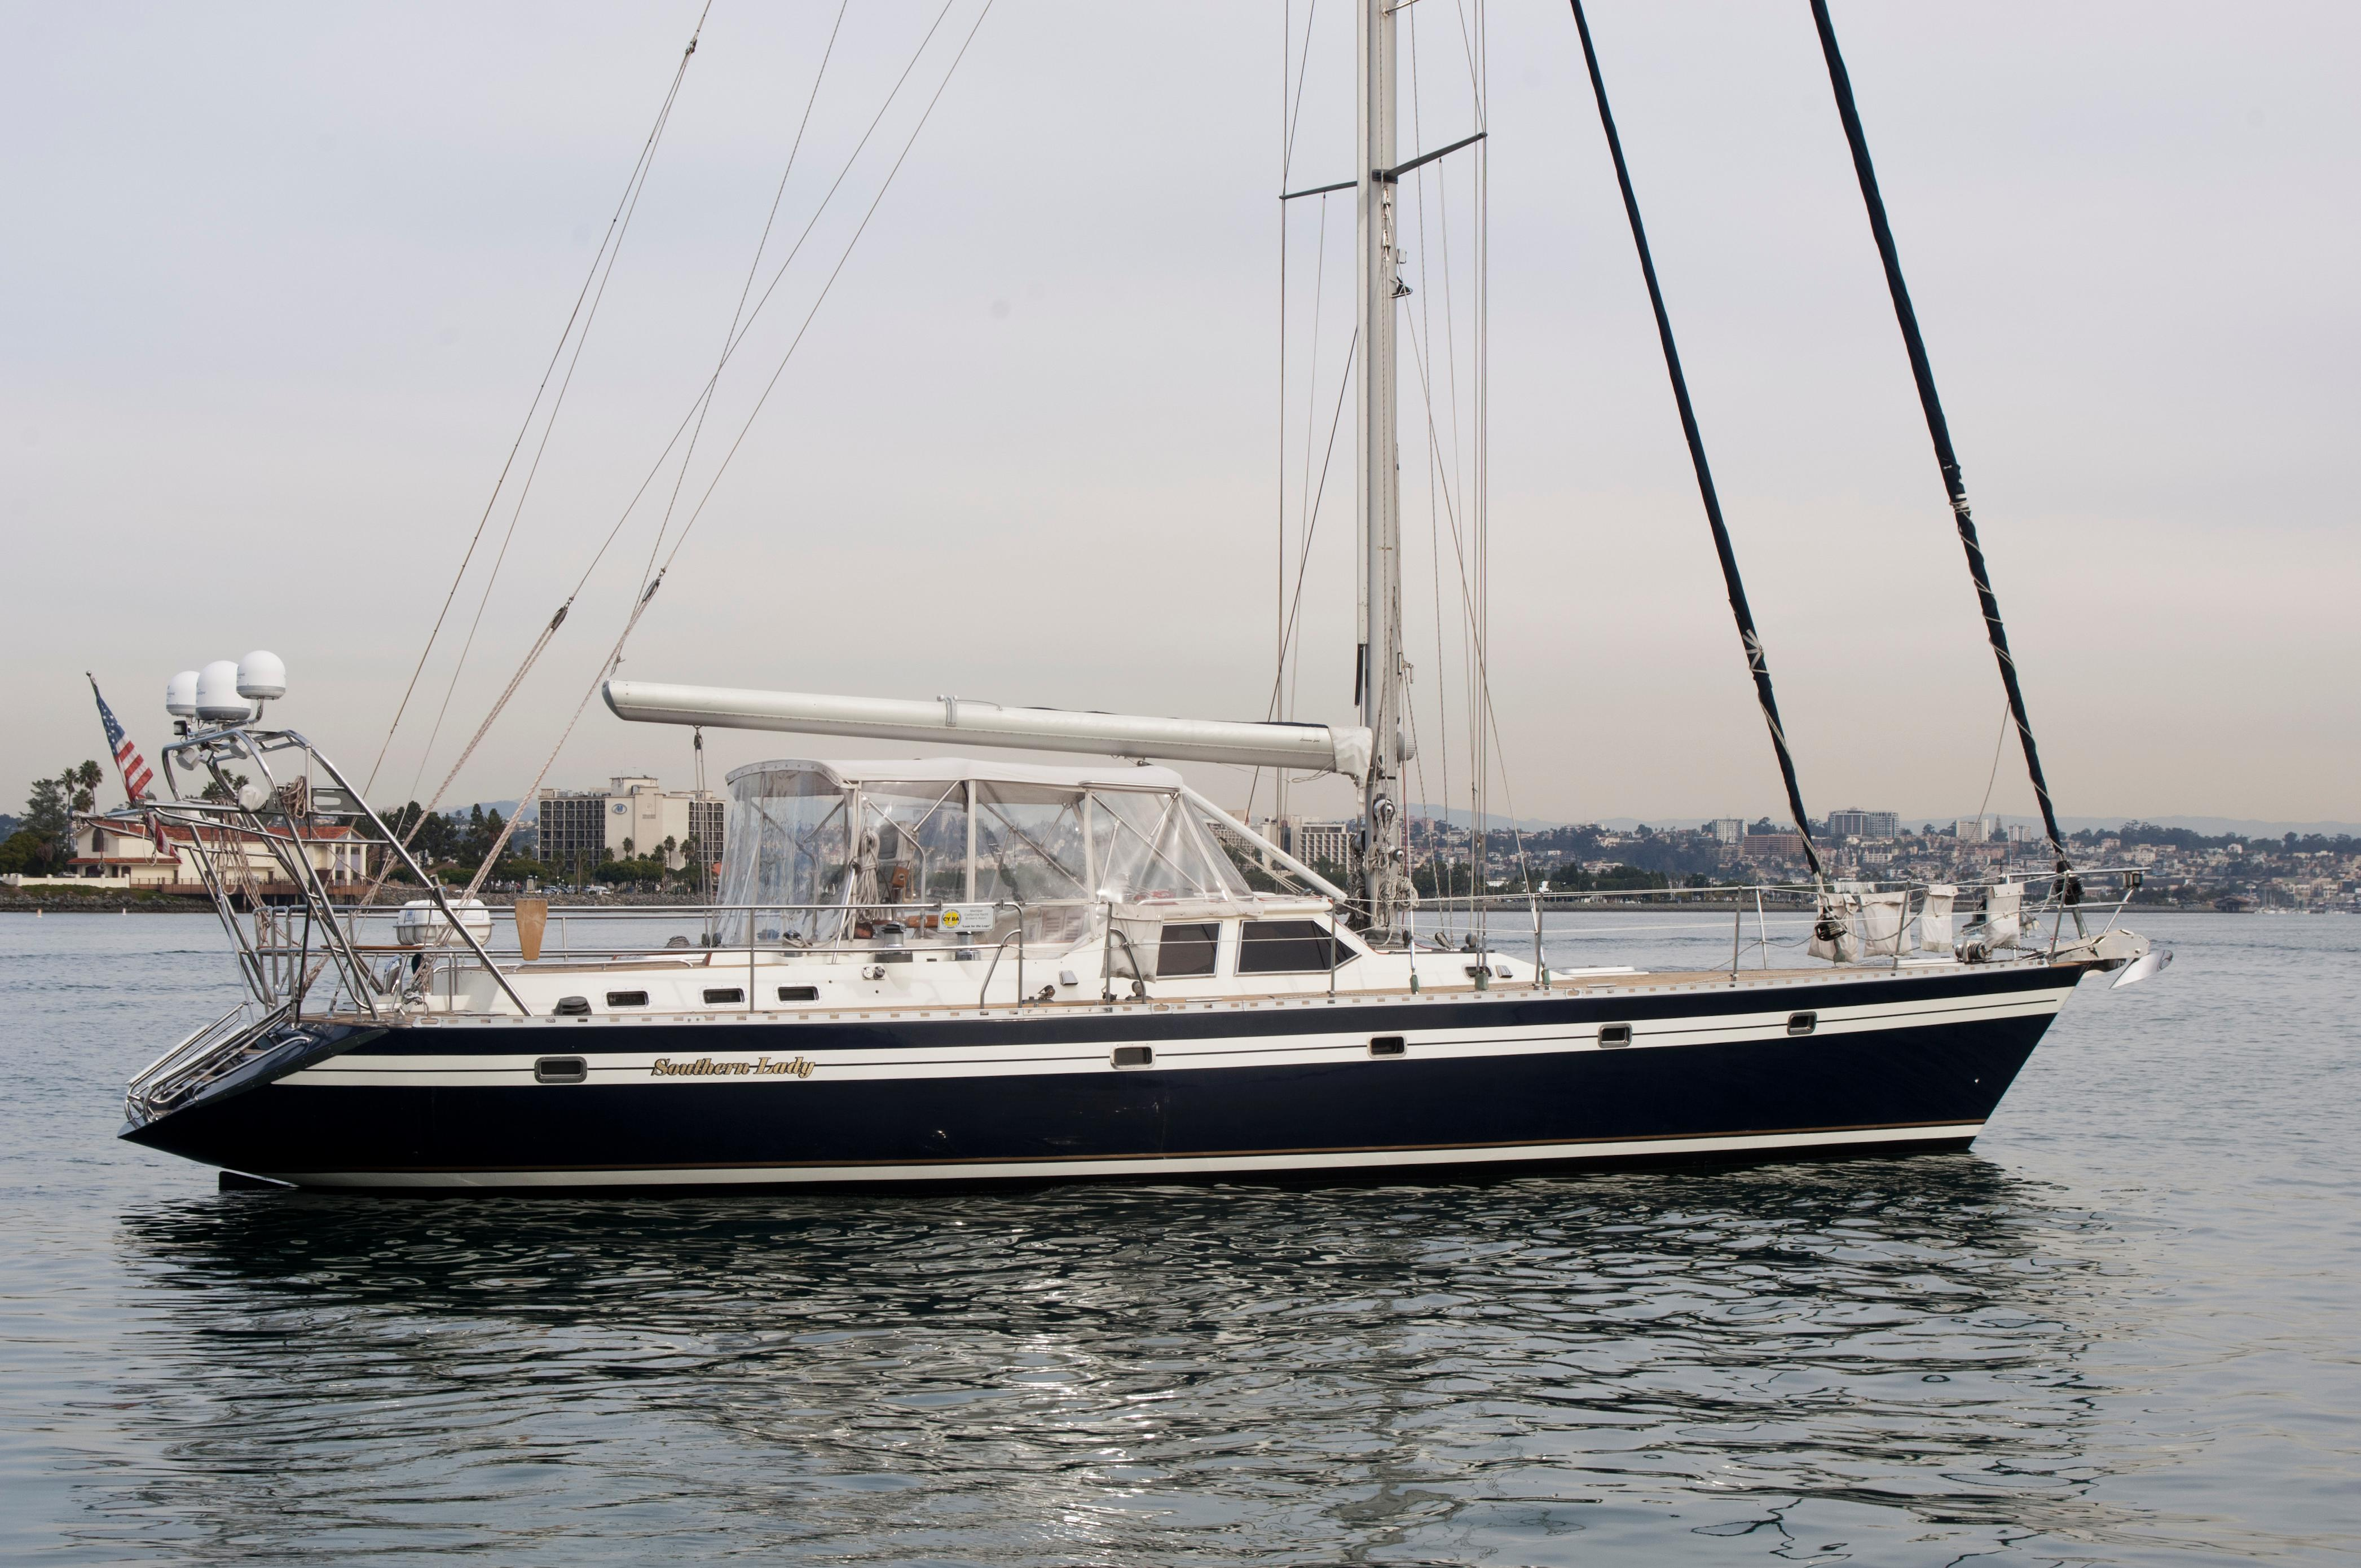 5629086_20160204102457349_1_XLARGE&w=4186&h=2780&t=1454610538000 2006 tayana 58 sail boat for sale www yachtworld com  at gsmportal.co